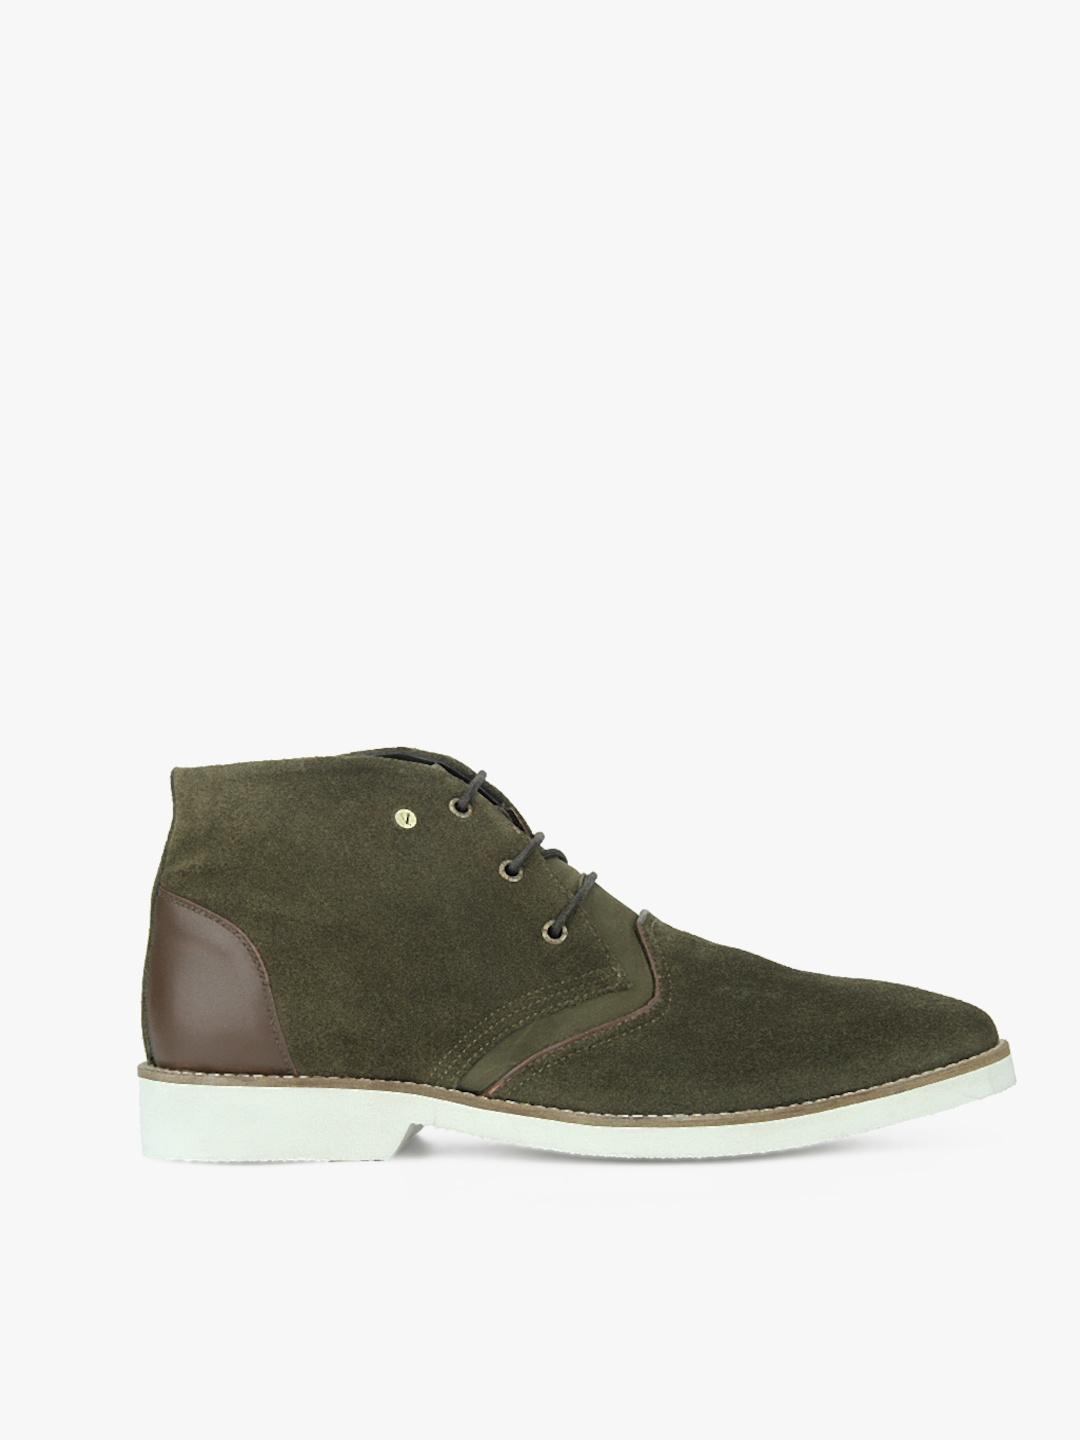 e405d88365 Buy V Dot By Van Heusen Men Olive Green Suede Boots - Casual Shoes ...